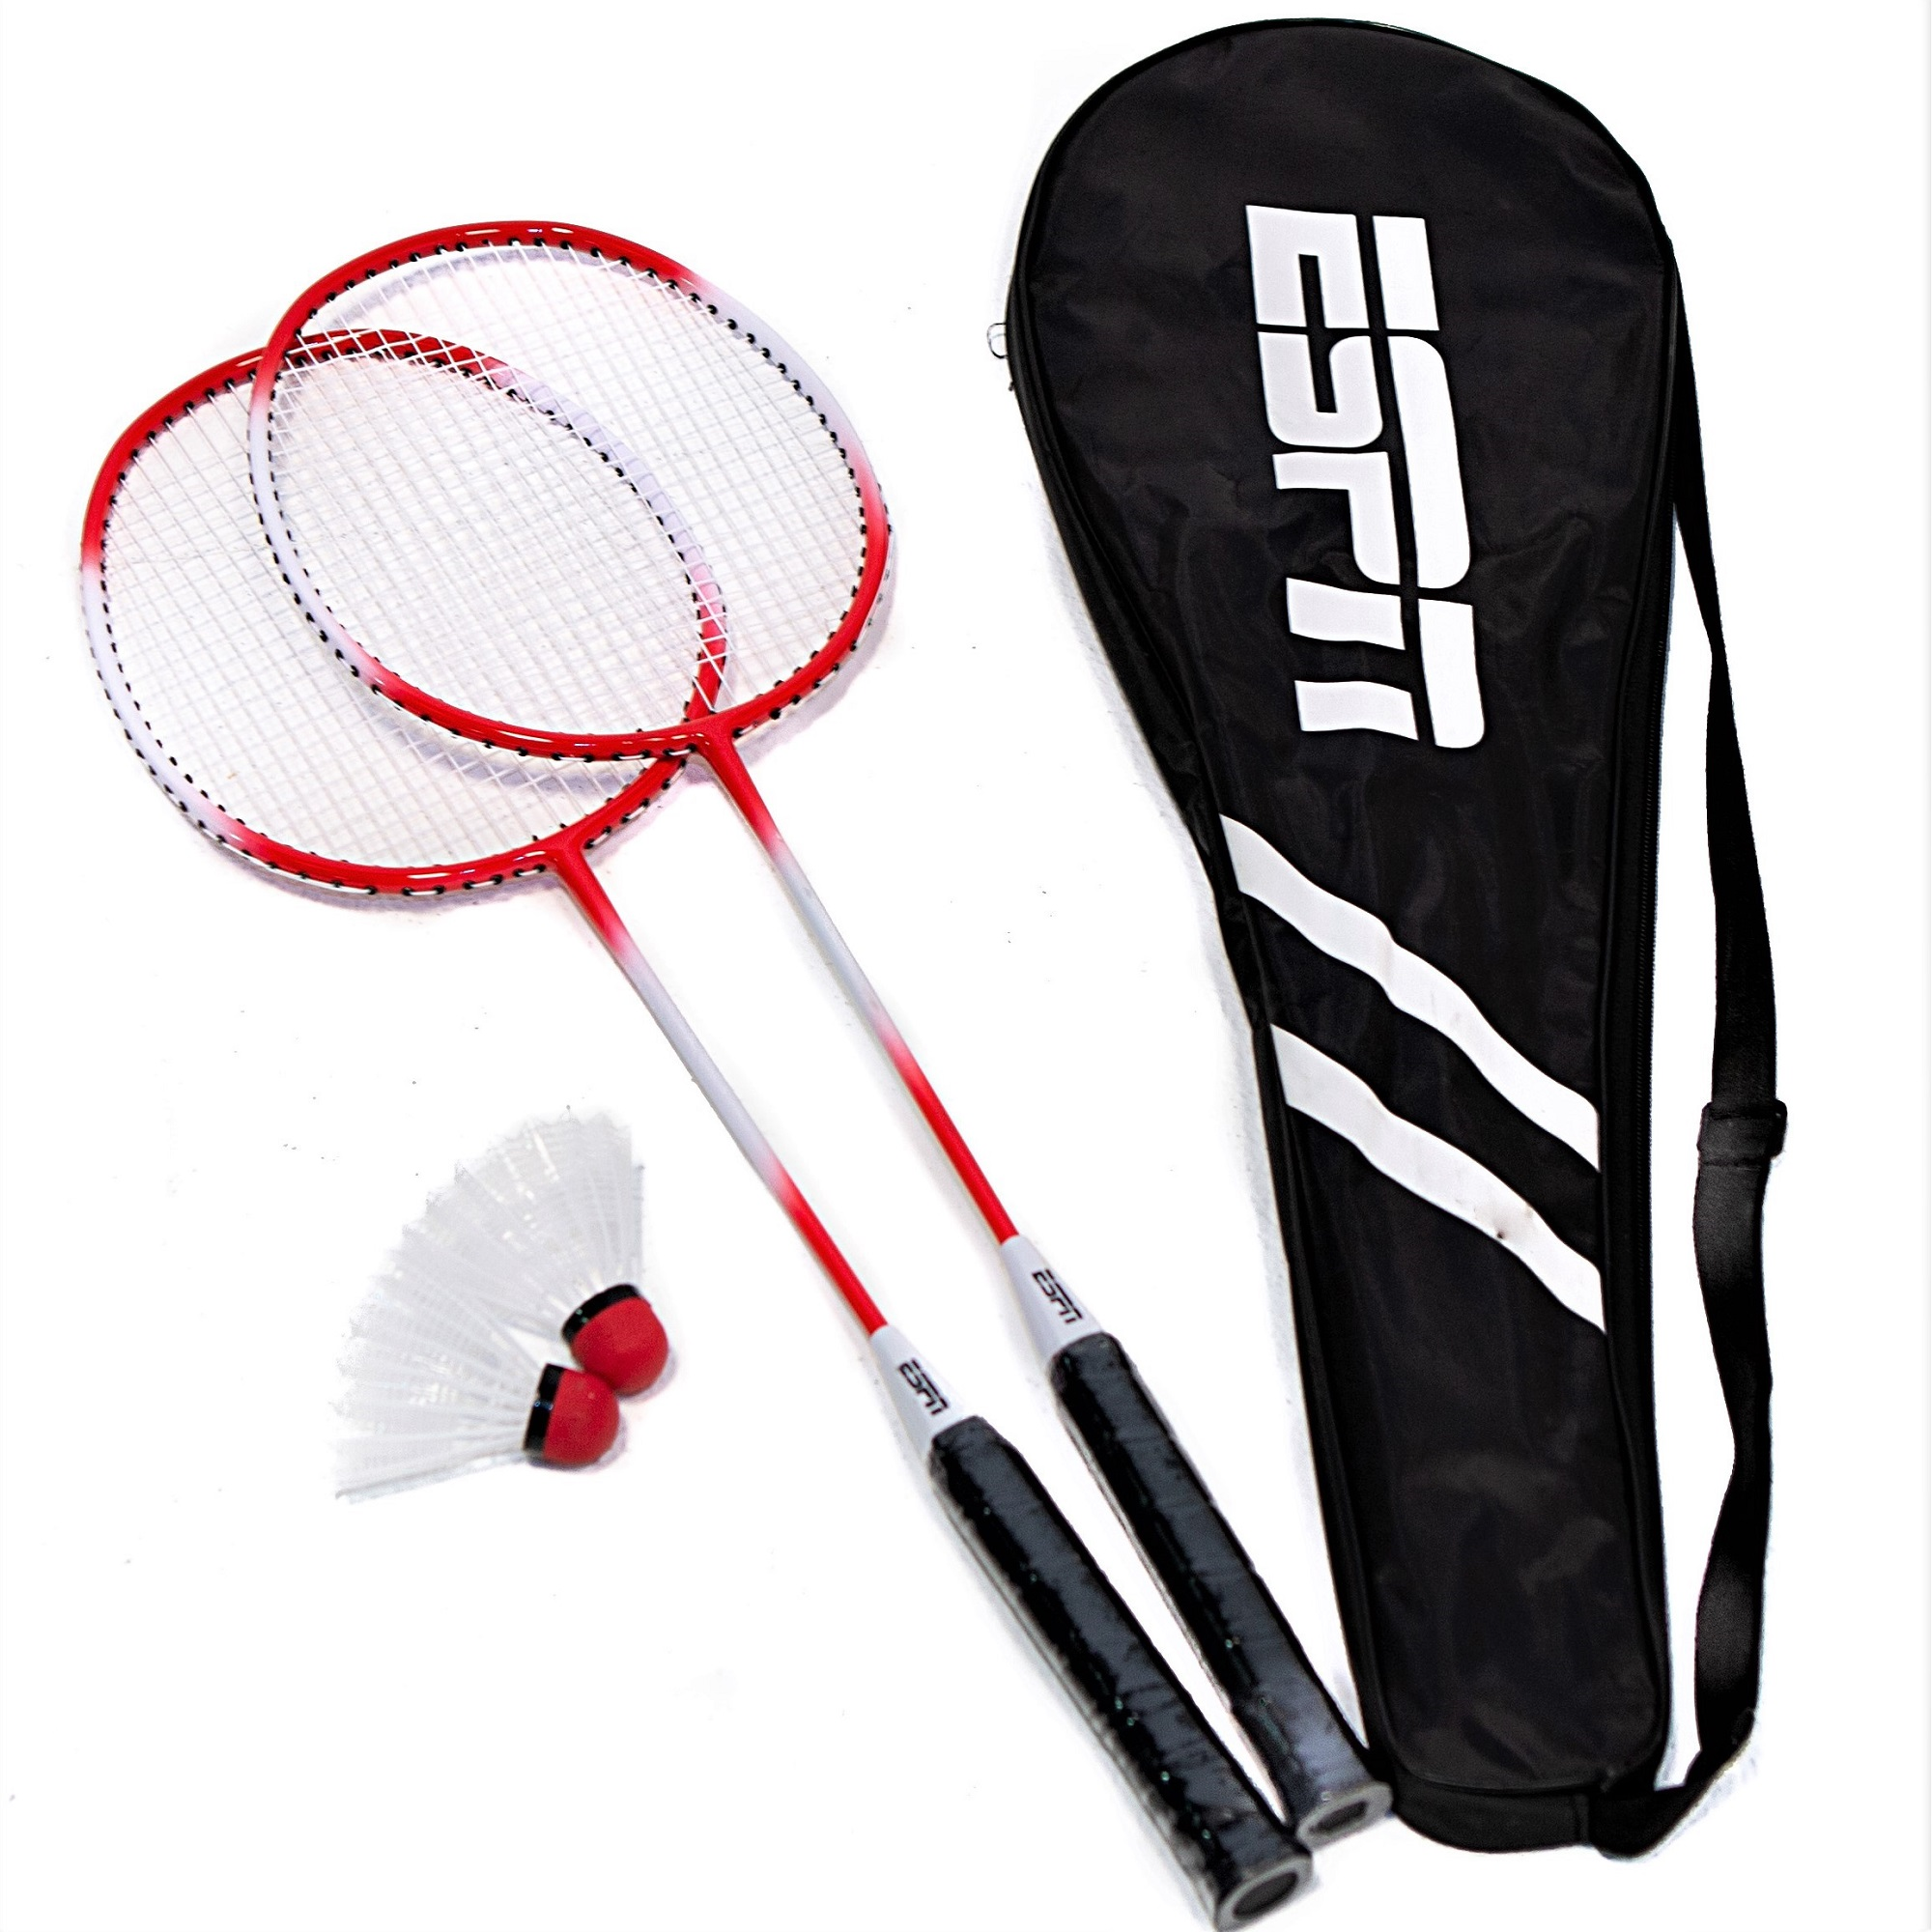 ESPN 2-Player One-Piece Aluminum Alloy Badminton Racket Set with Carry Bag, Lightweight, Two racquets and two shuttlecocks